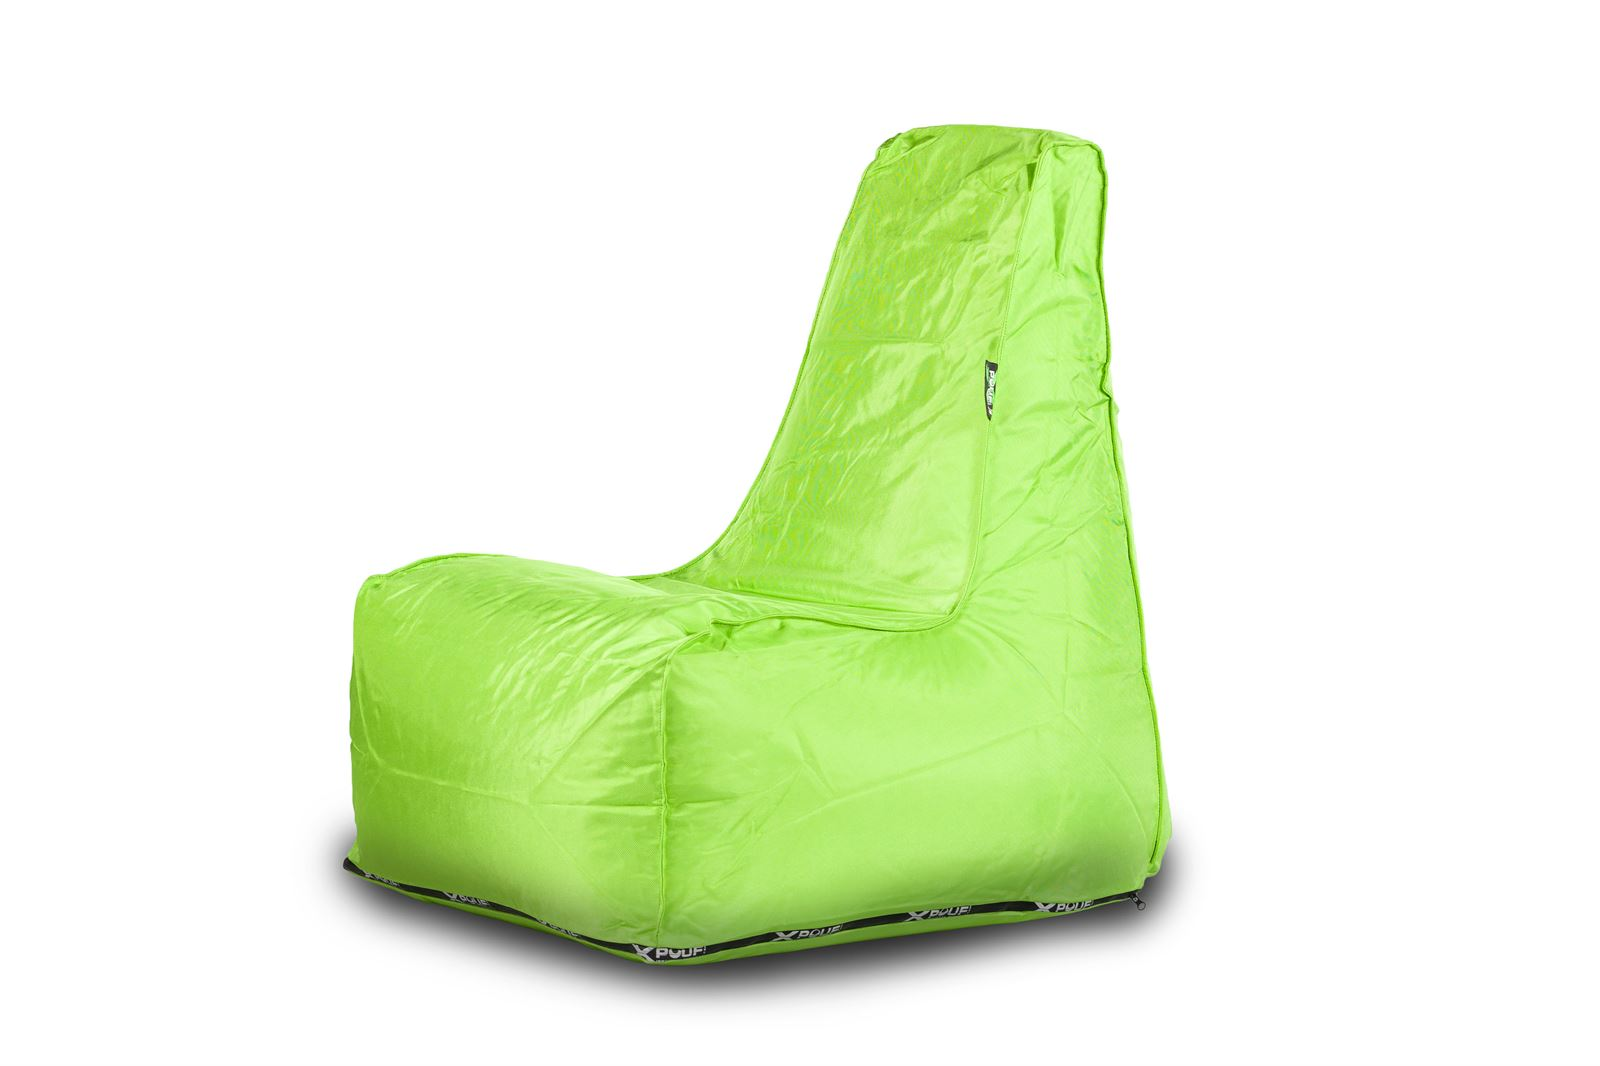 X-CHAIR  Outdoor Pouf Verde